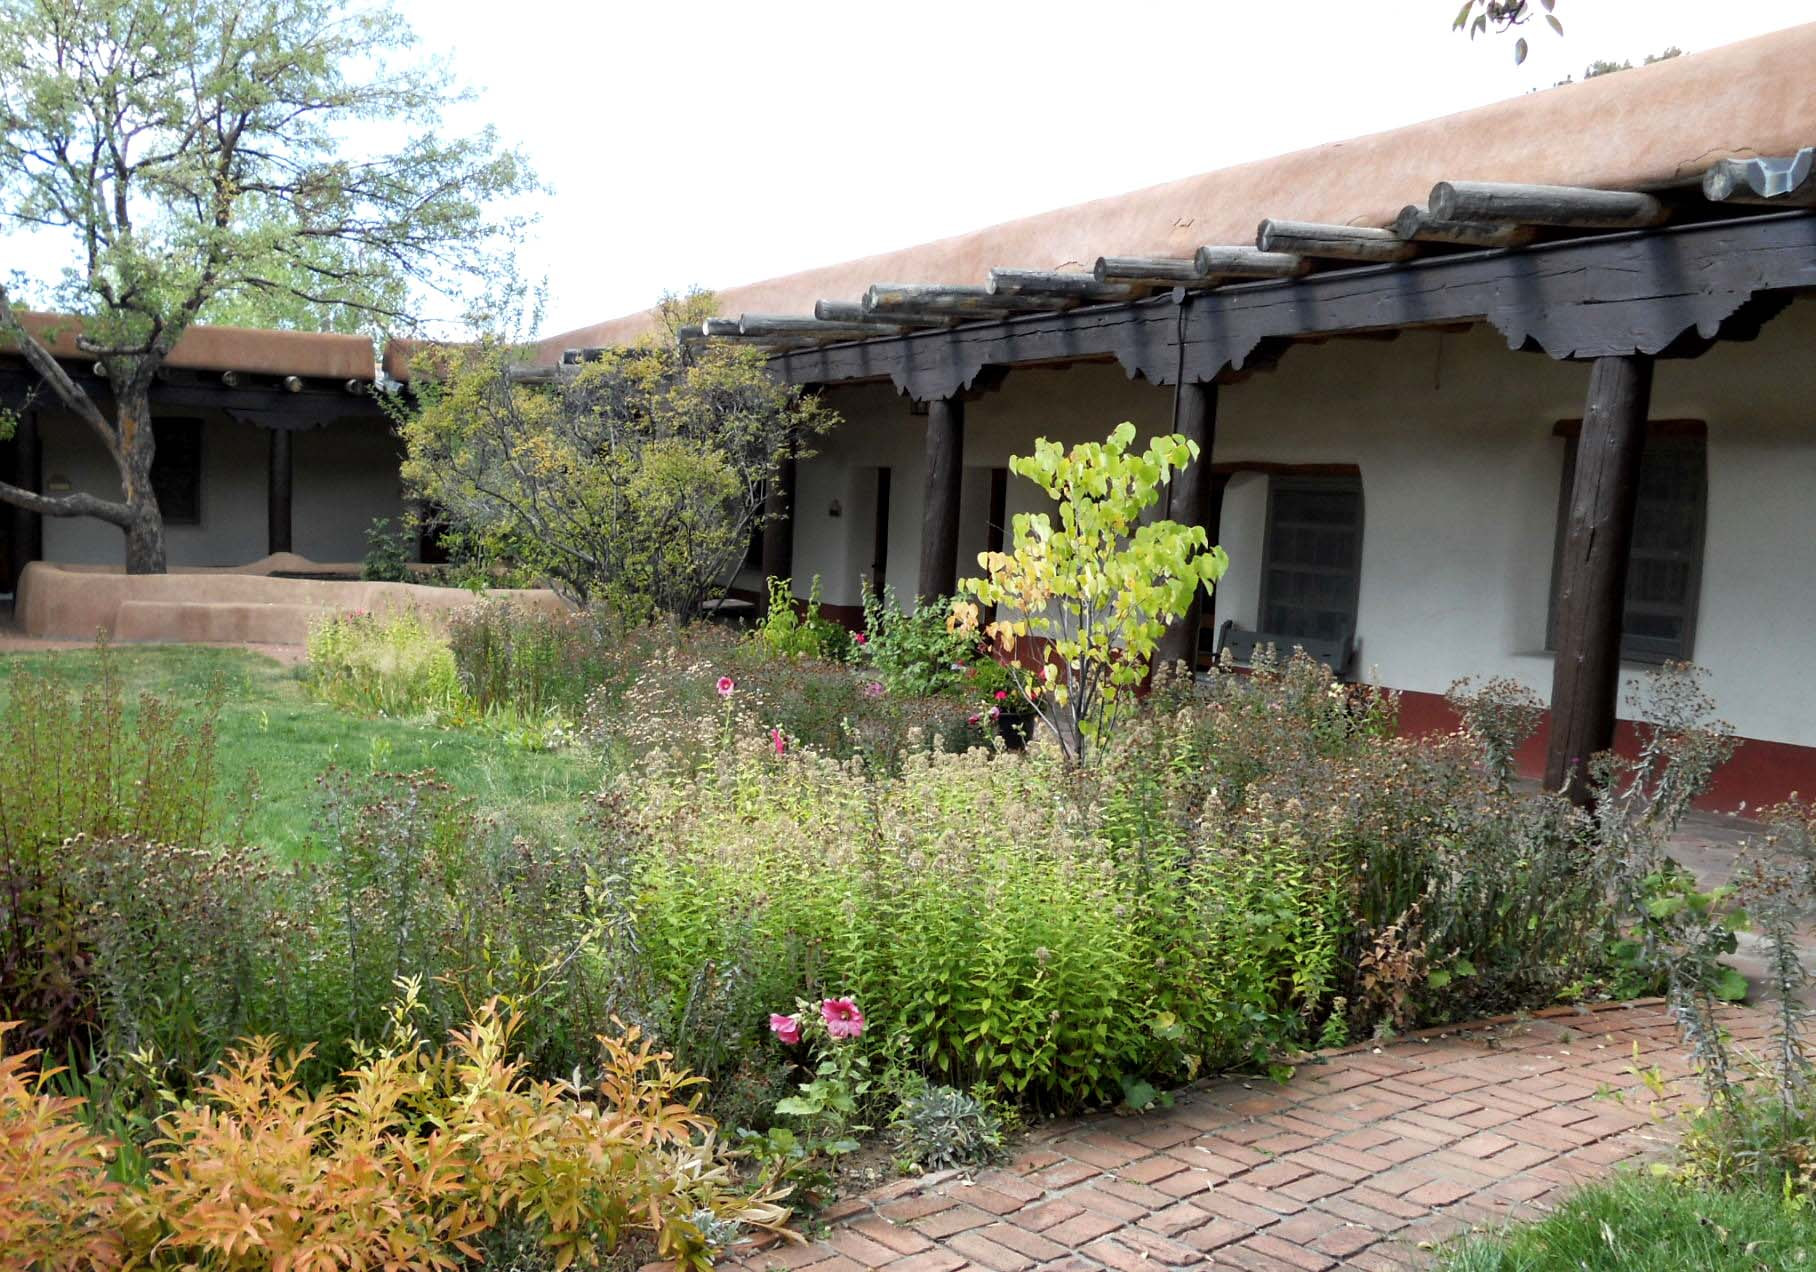 Lush plantings in the Old Santa Fe Trail building follow the historic planting designs